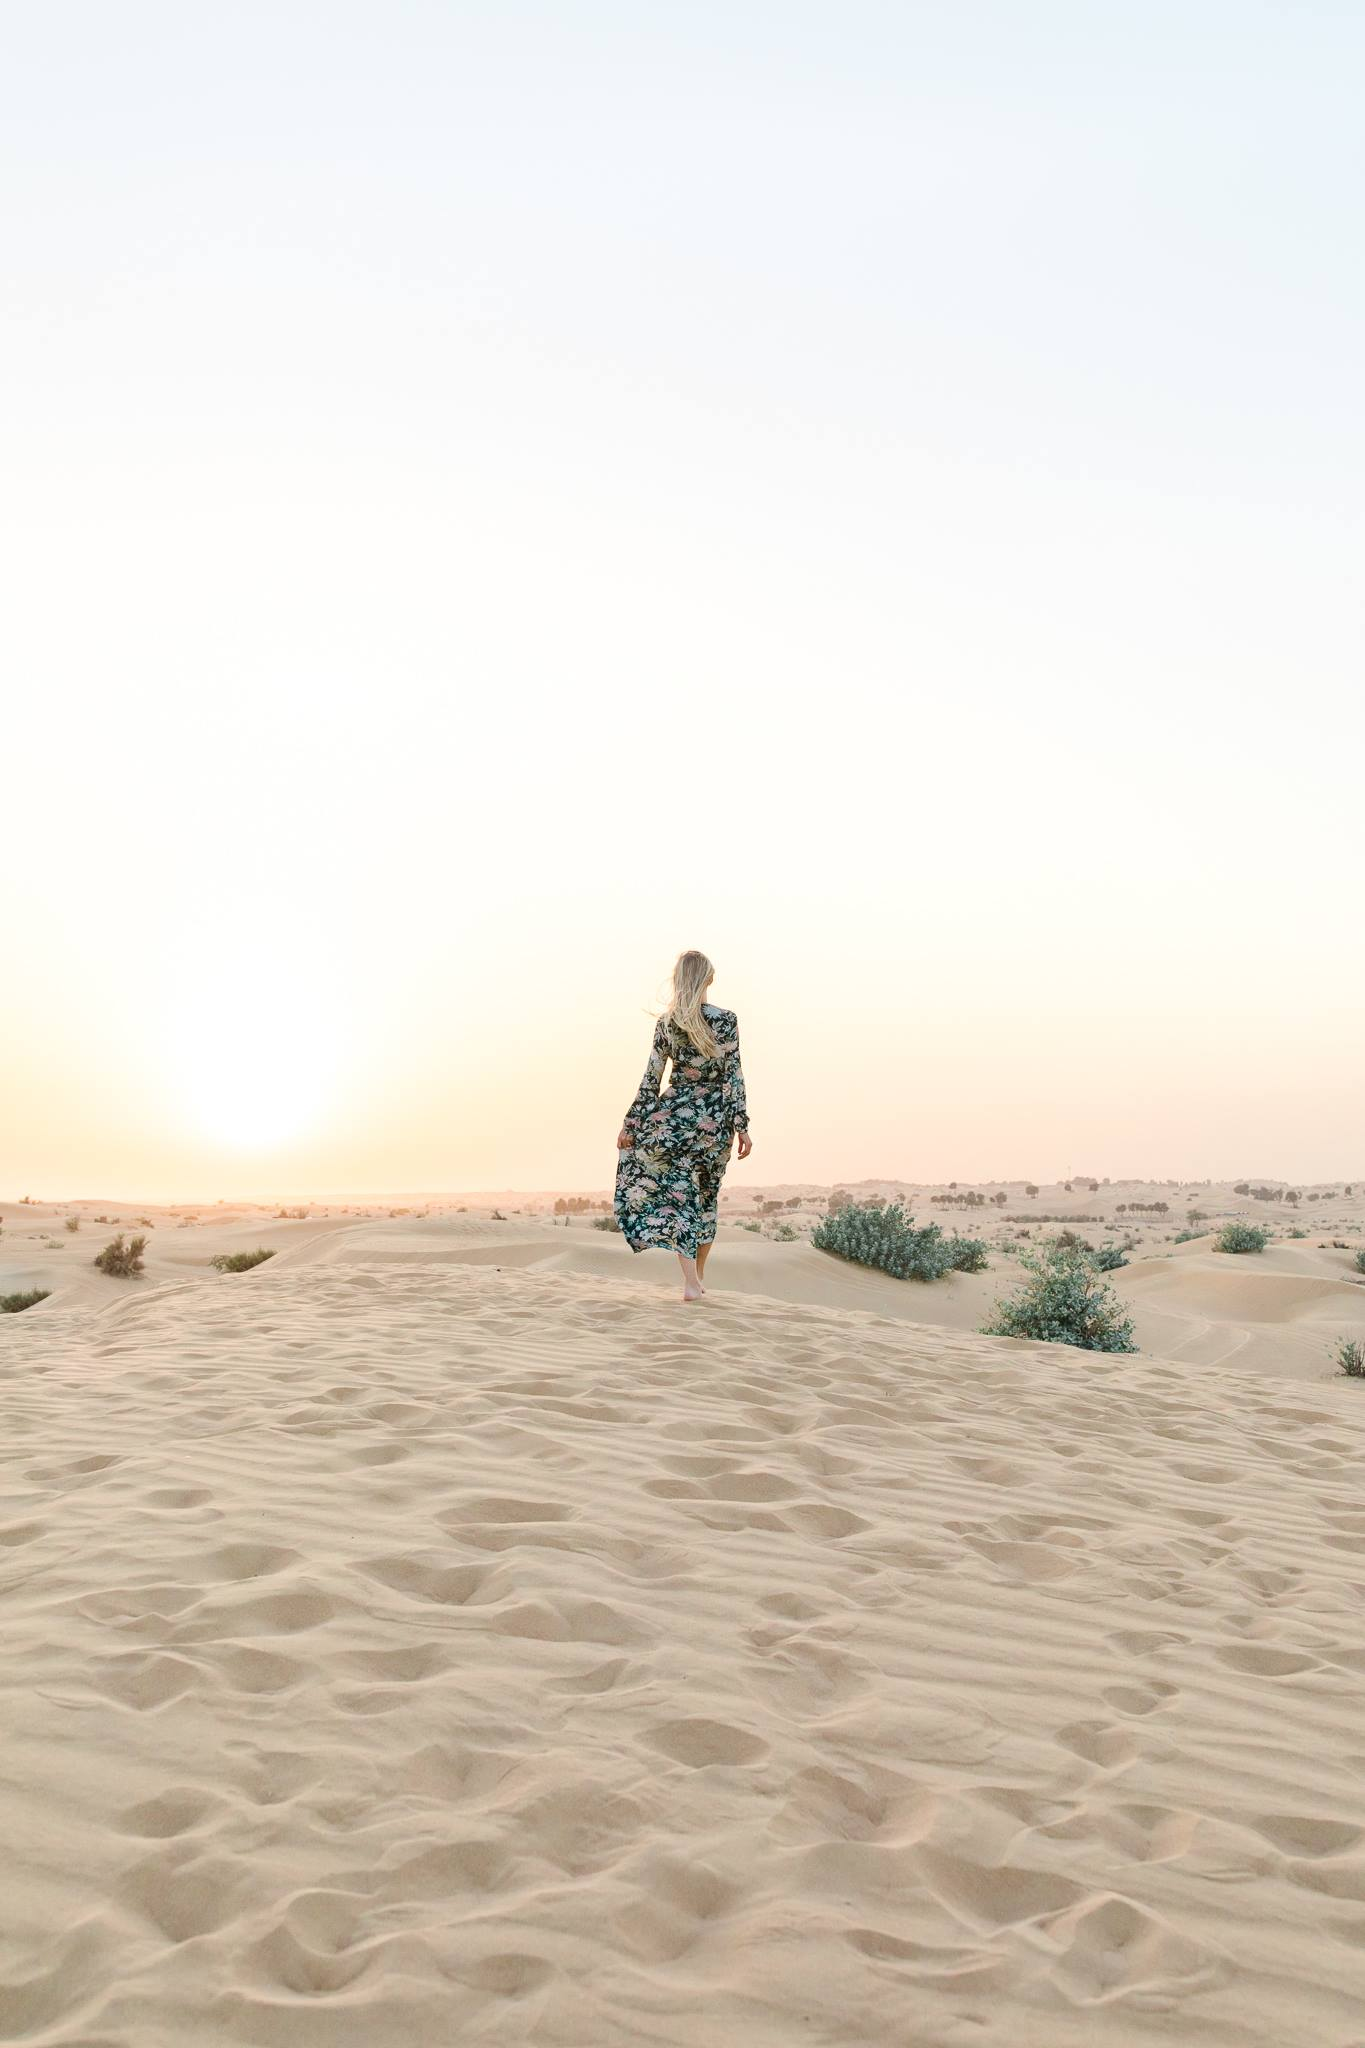 me in the desert in Dubai.jpg